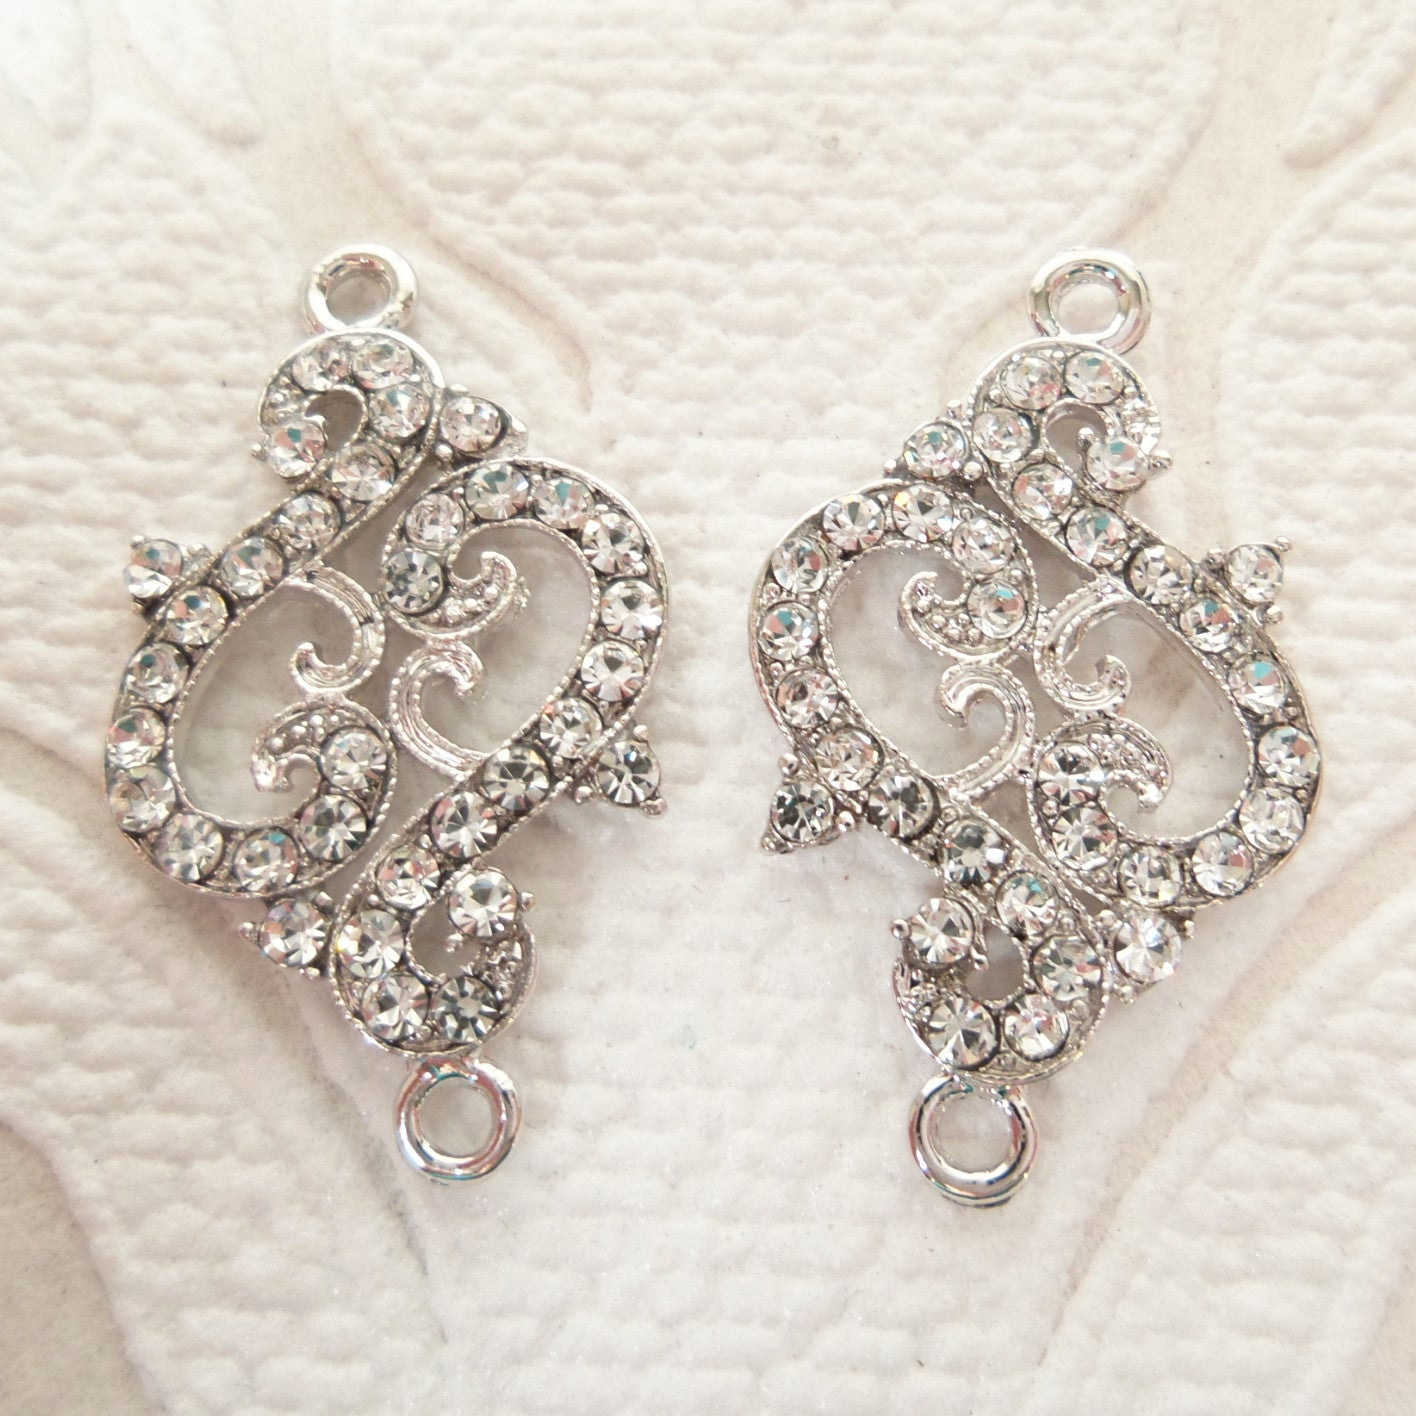 Swirl Connector Rhinestone Chandelier Earring Components